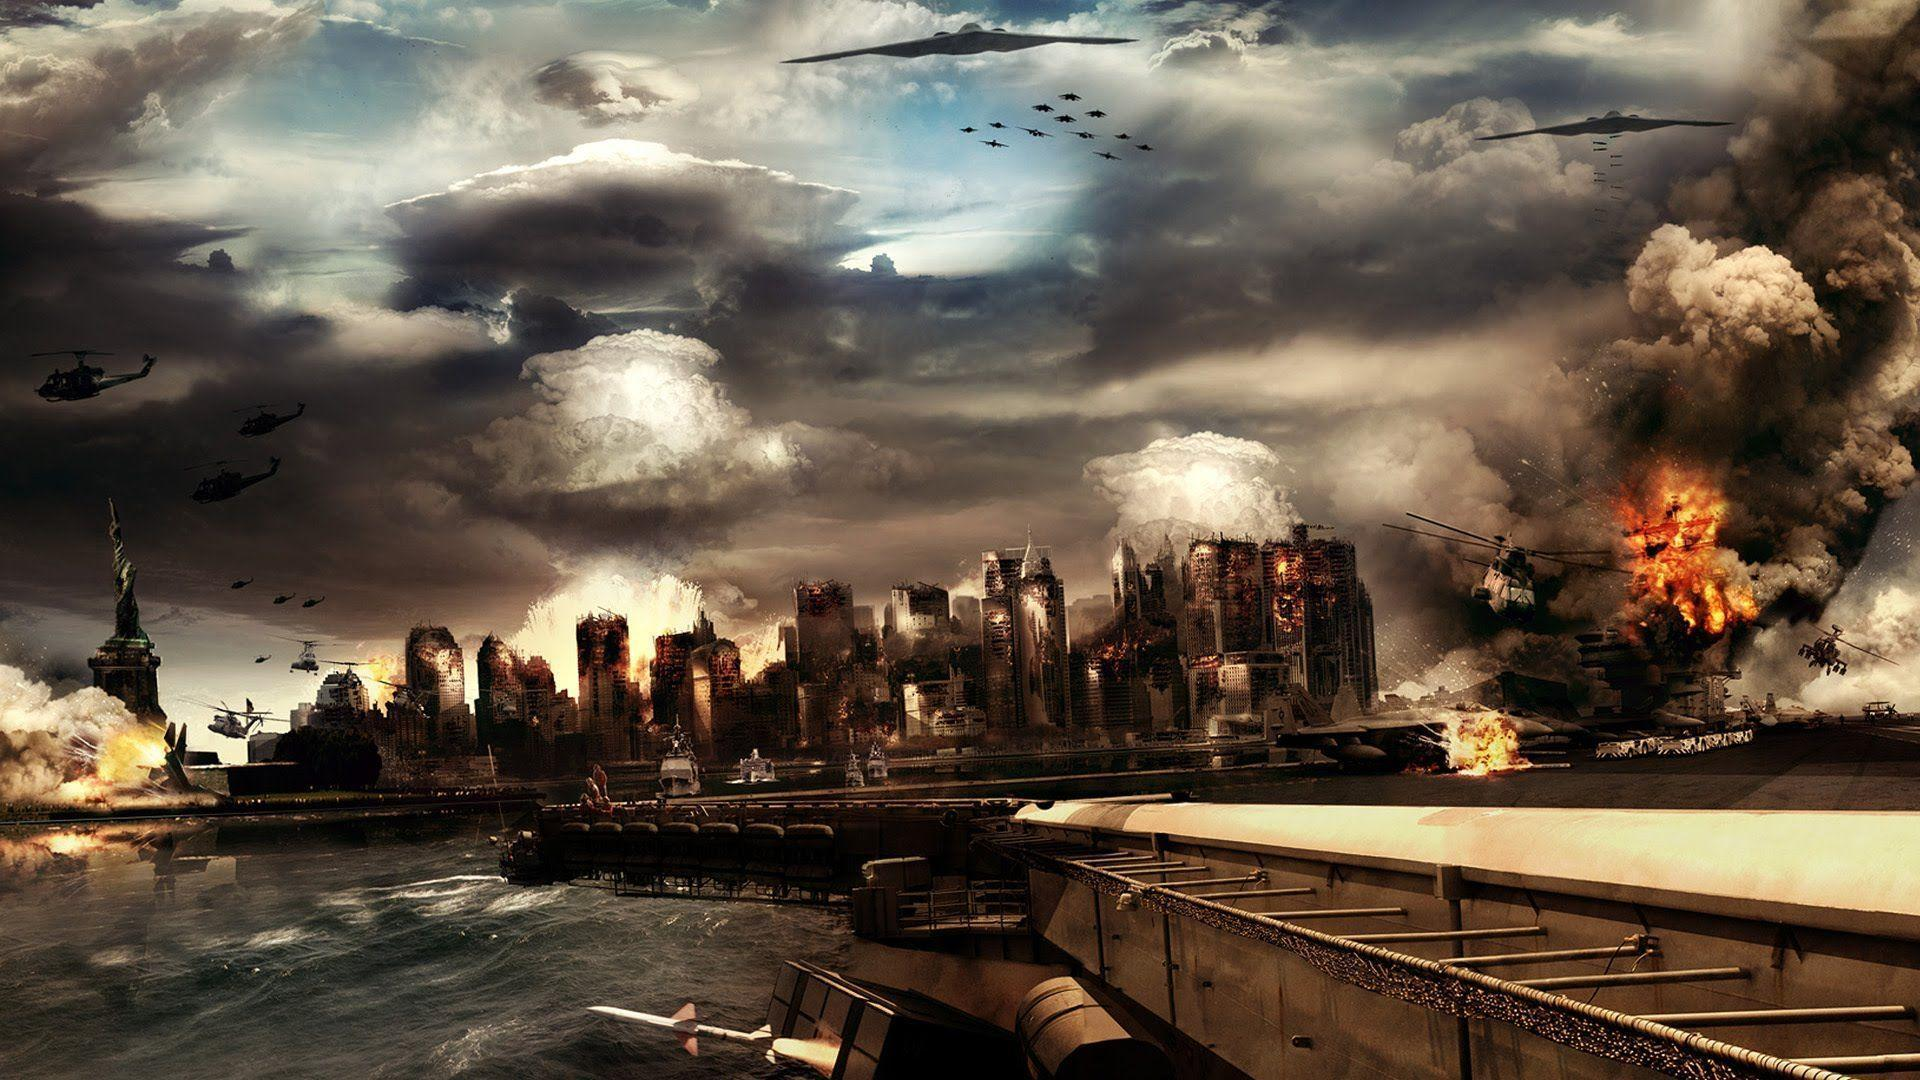 End of the world 2016 wallpapers wallpaper cave proof world war 3 2016 isis illuminati nwo china russian gas oil voltagebd Images